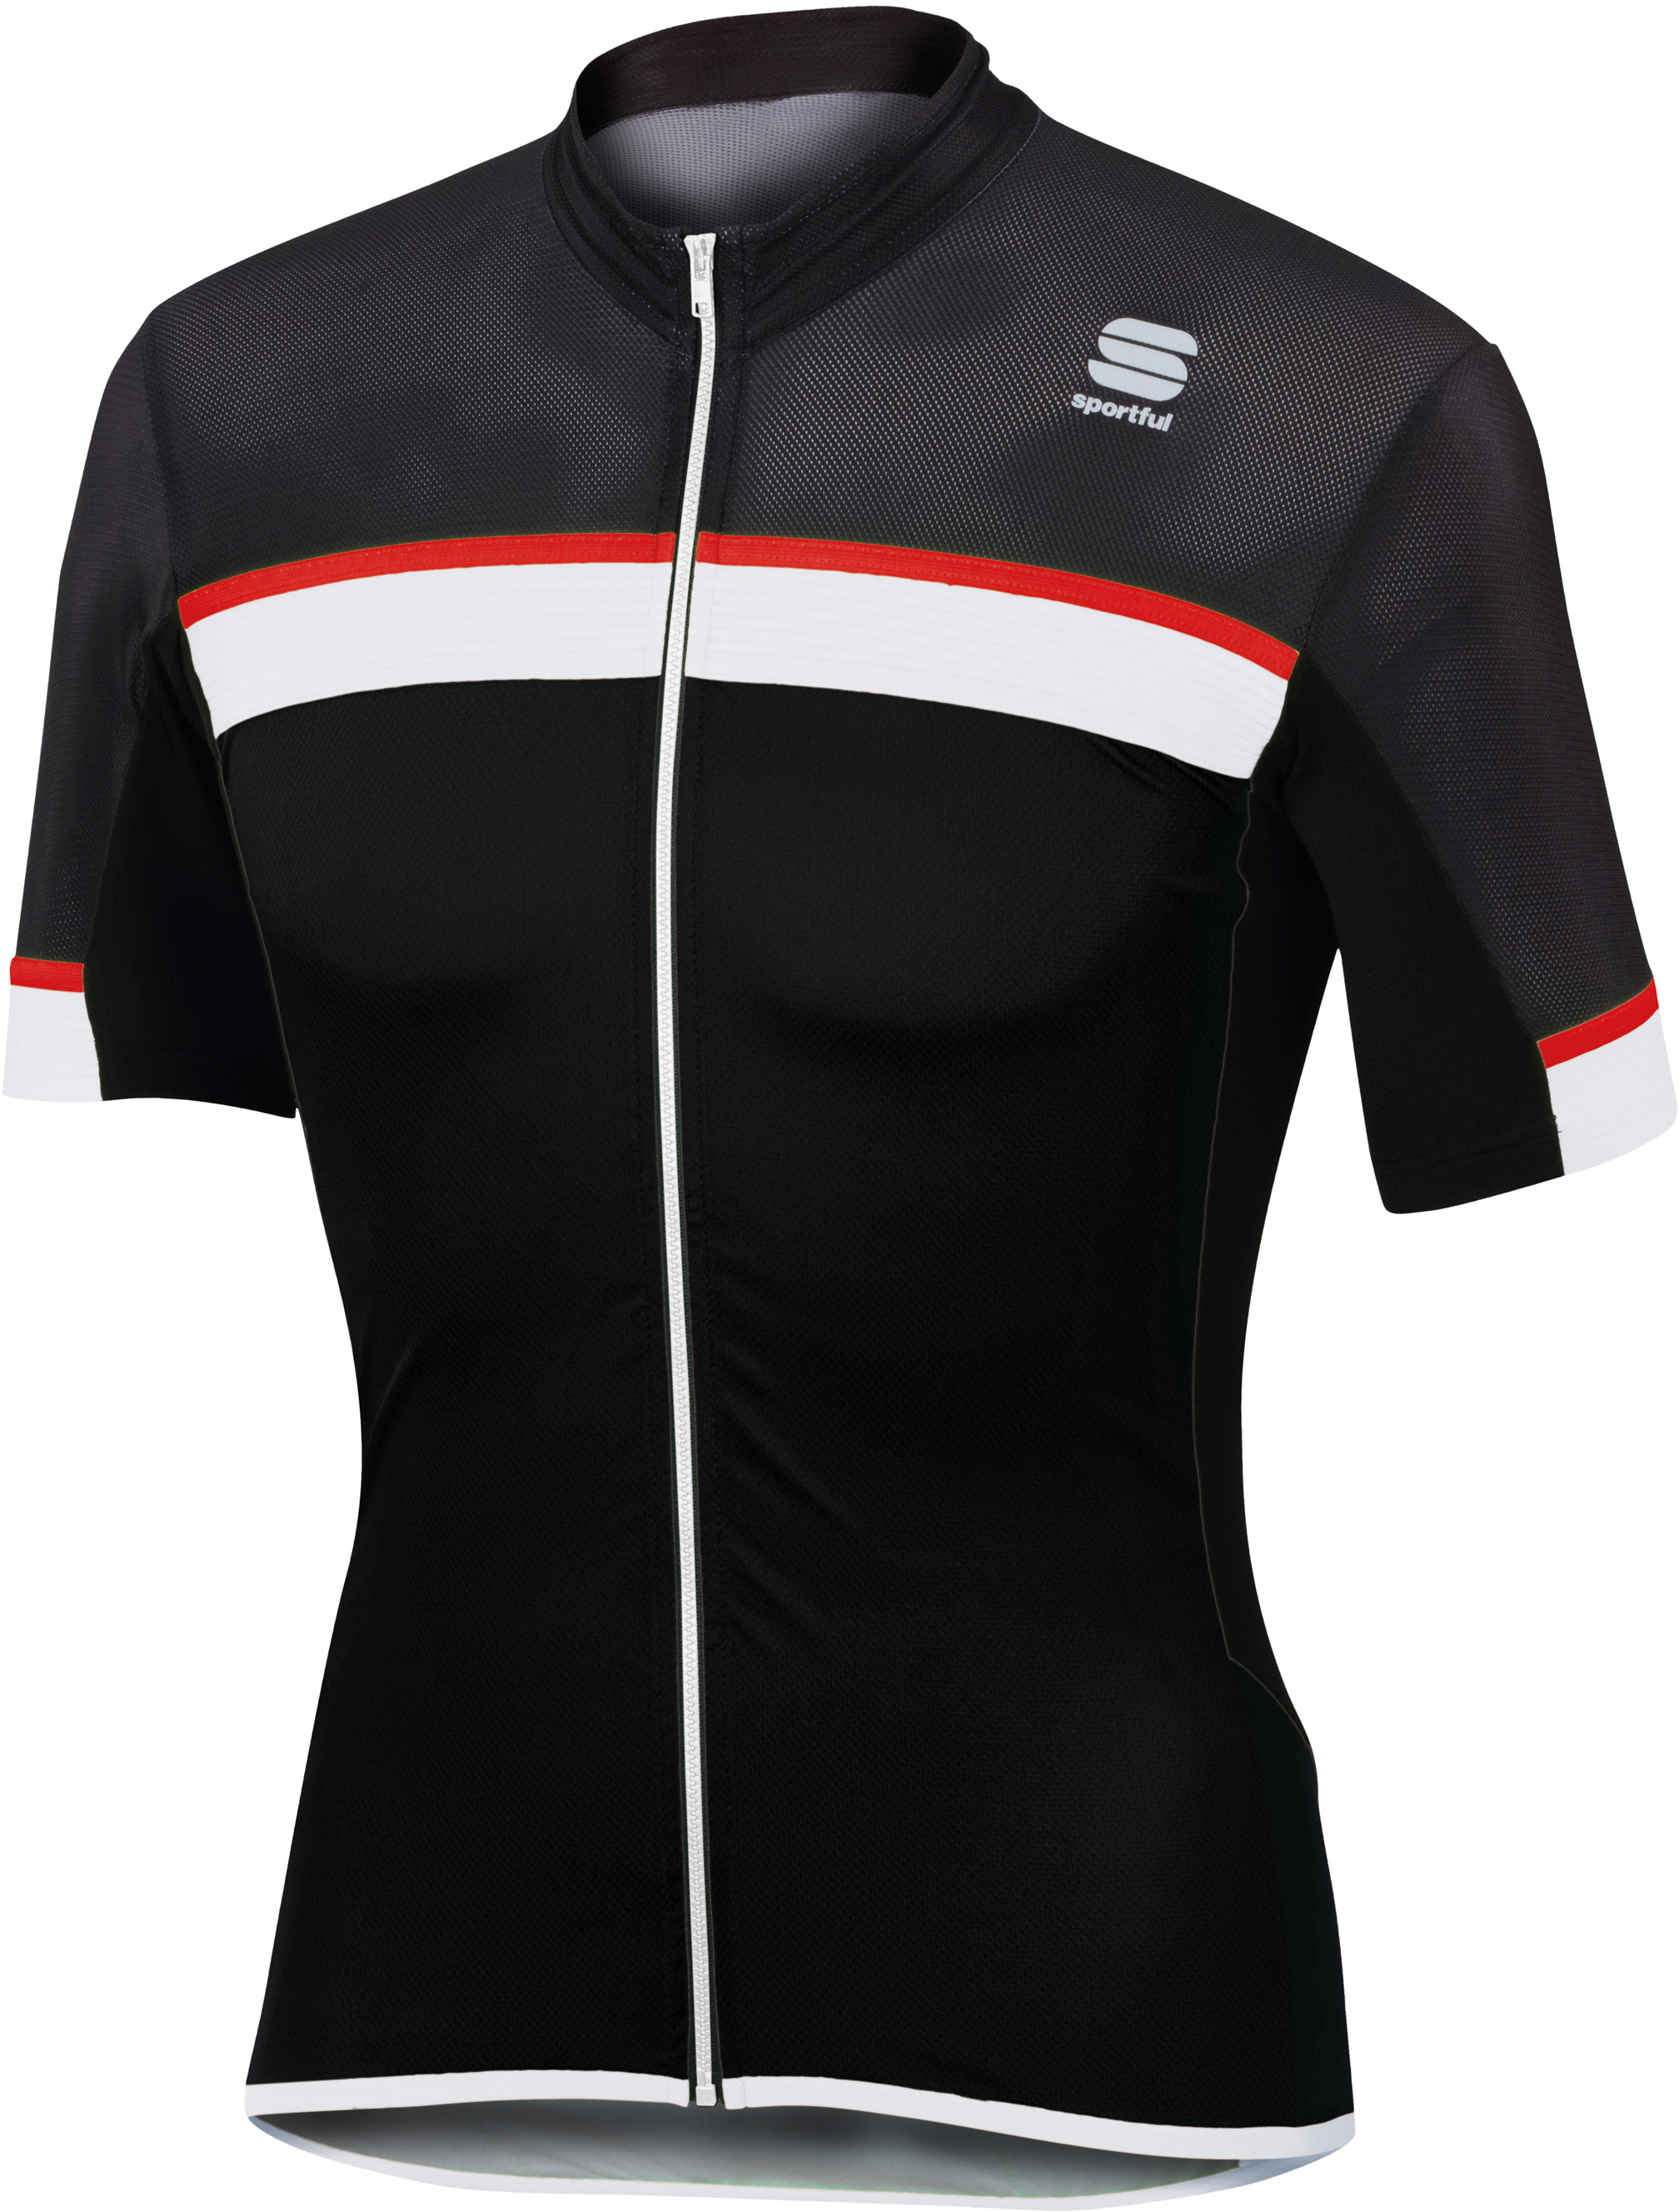 5829f5d1e85639 Sportful Cycling jerseys and shirts